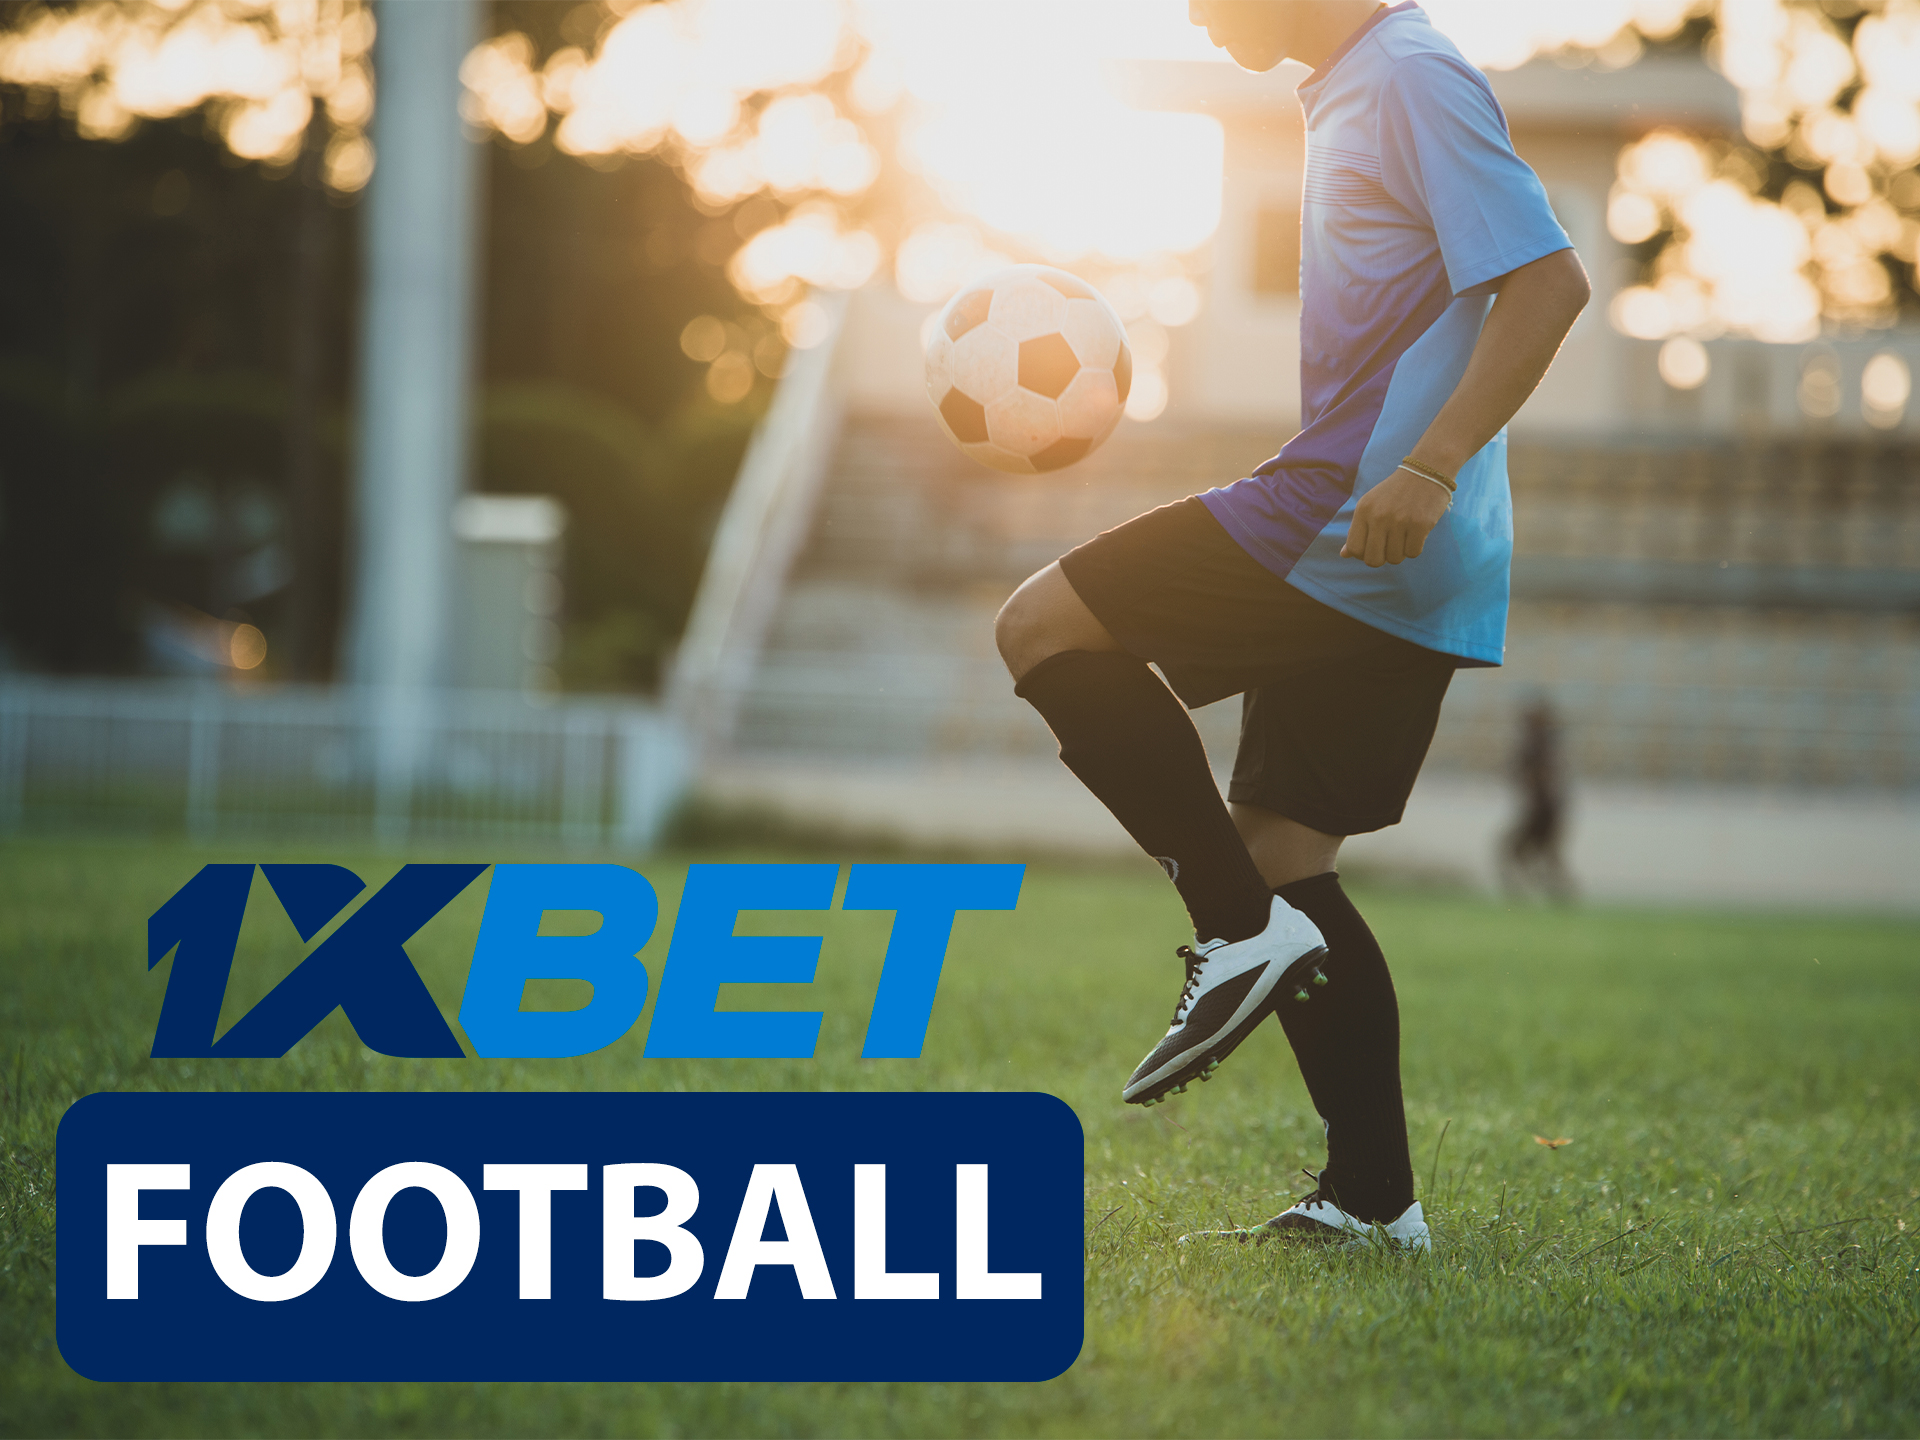 Start betting on football with 1xBet